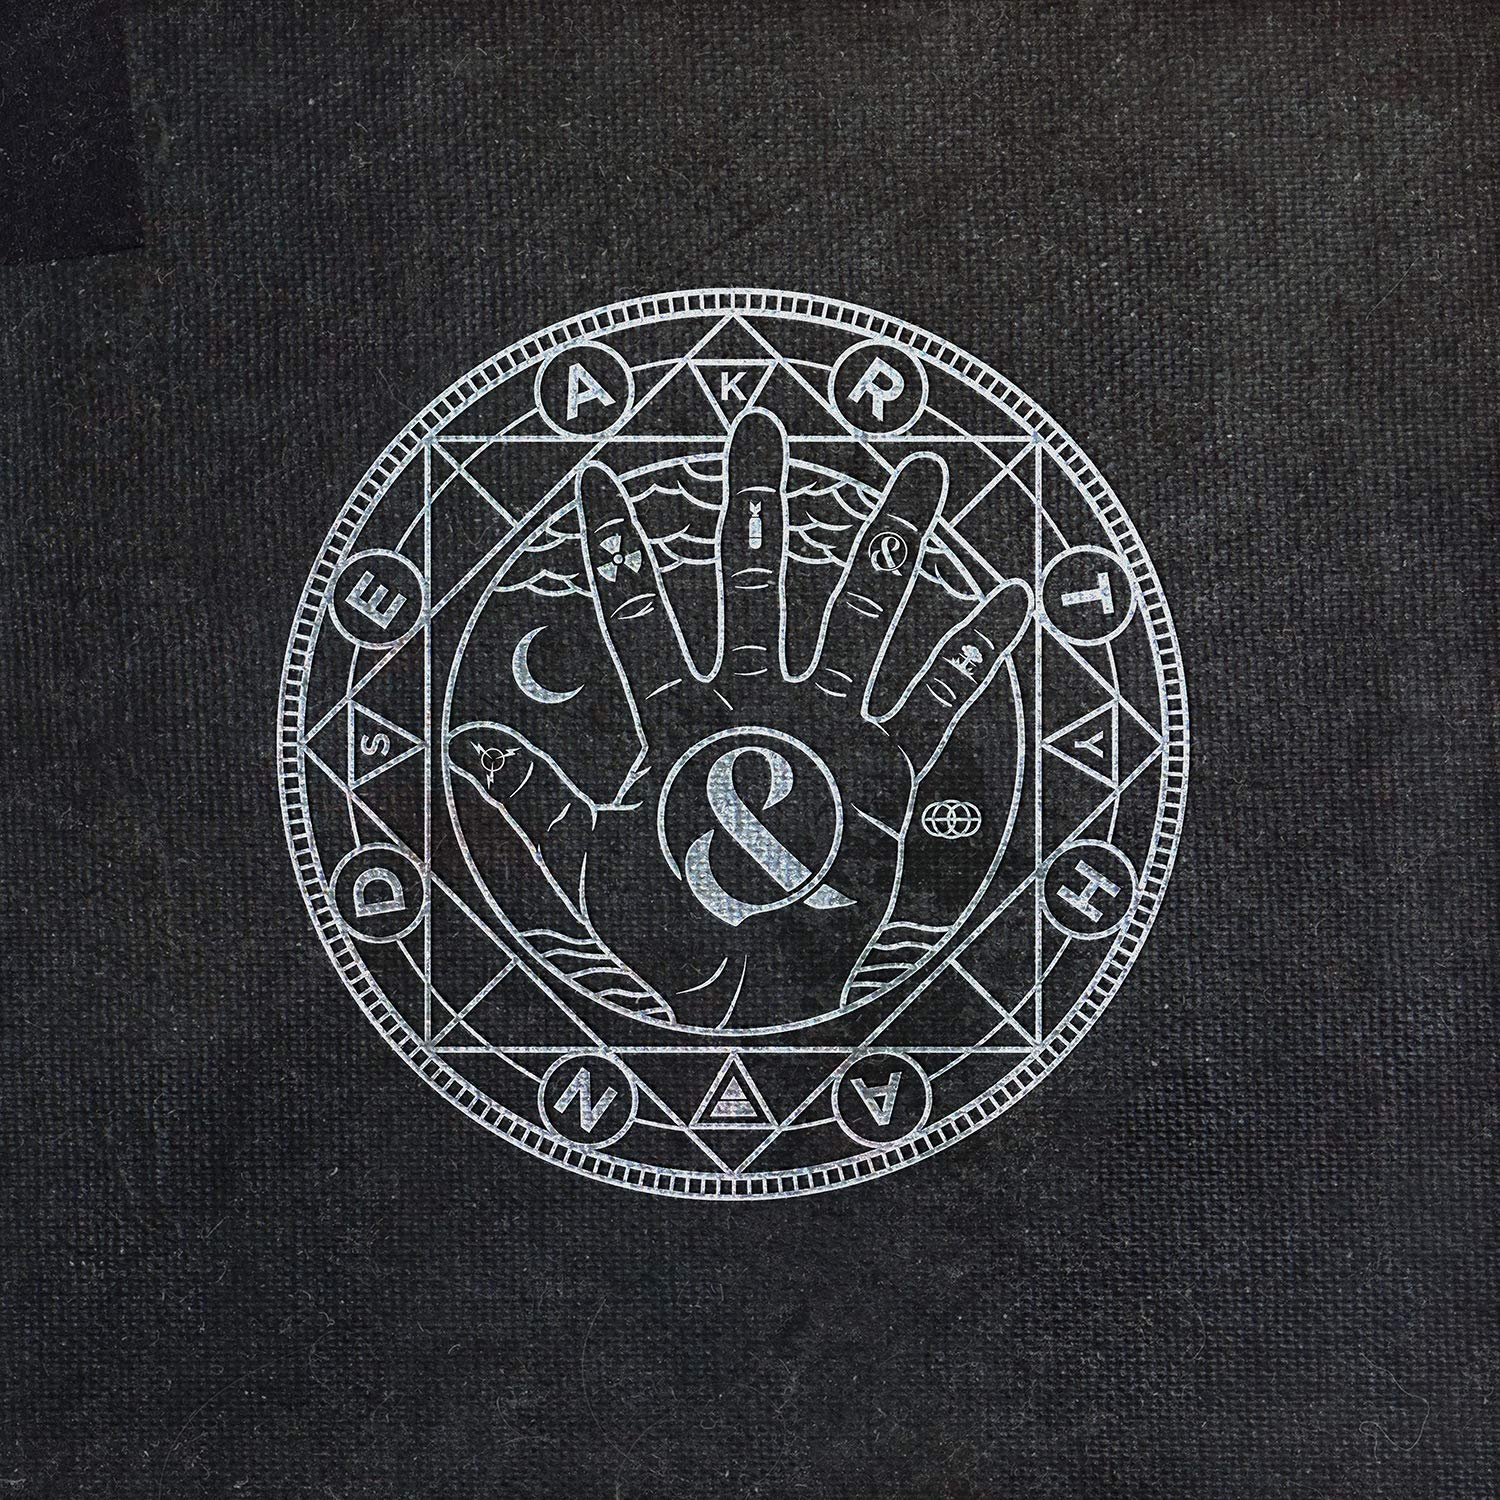 Of Mice & Men Earthandsky